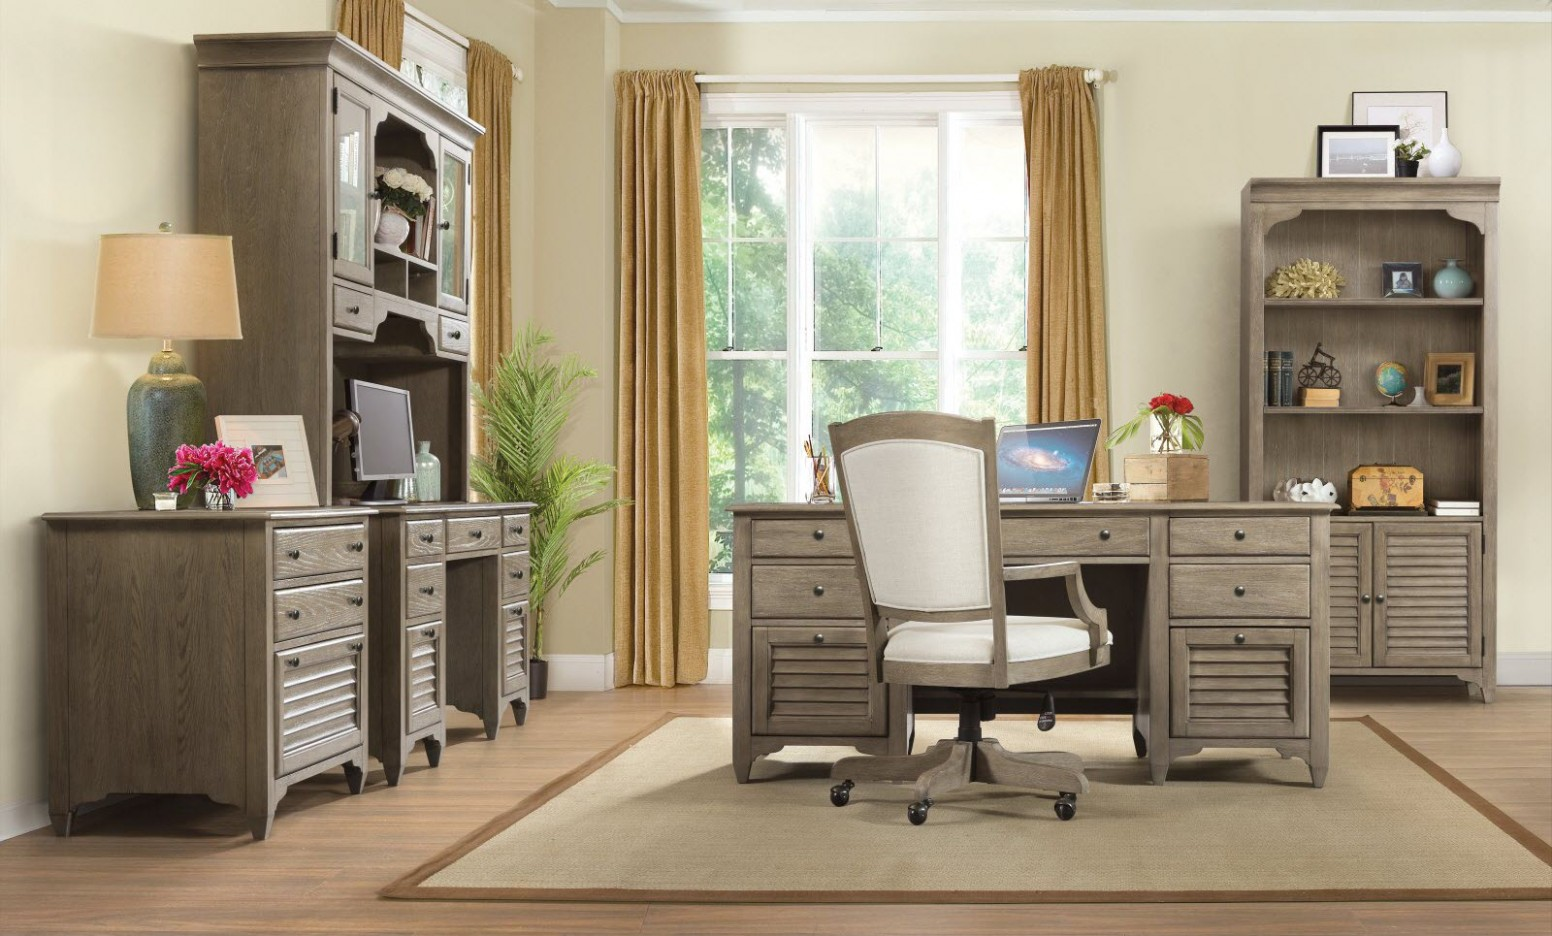 Home Office Ideas: Tips for Setting Up and Designing Your  - Home Office Ideas With L Shaped Desk